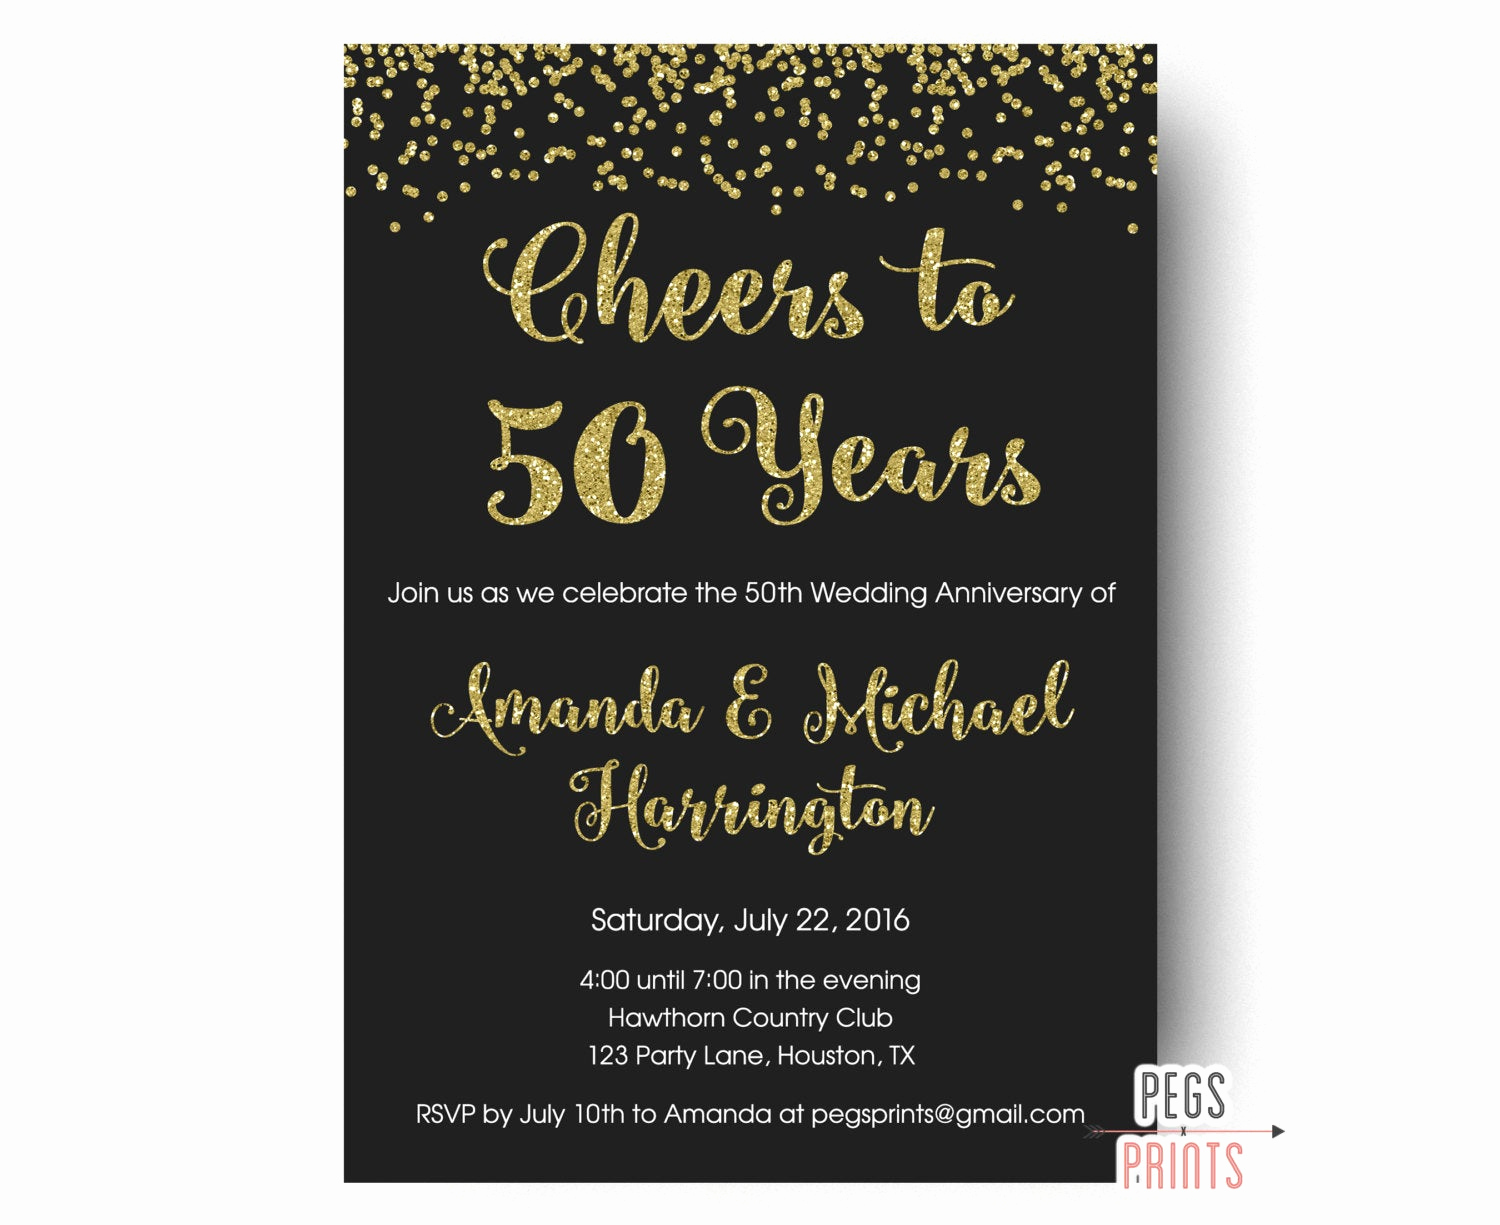 50th Birthday Invitation Ideas Best Of Cheers to 50 Years Invitation 50th Anniversary Invitation